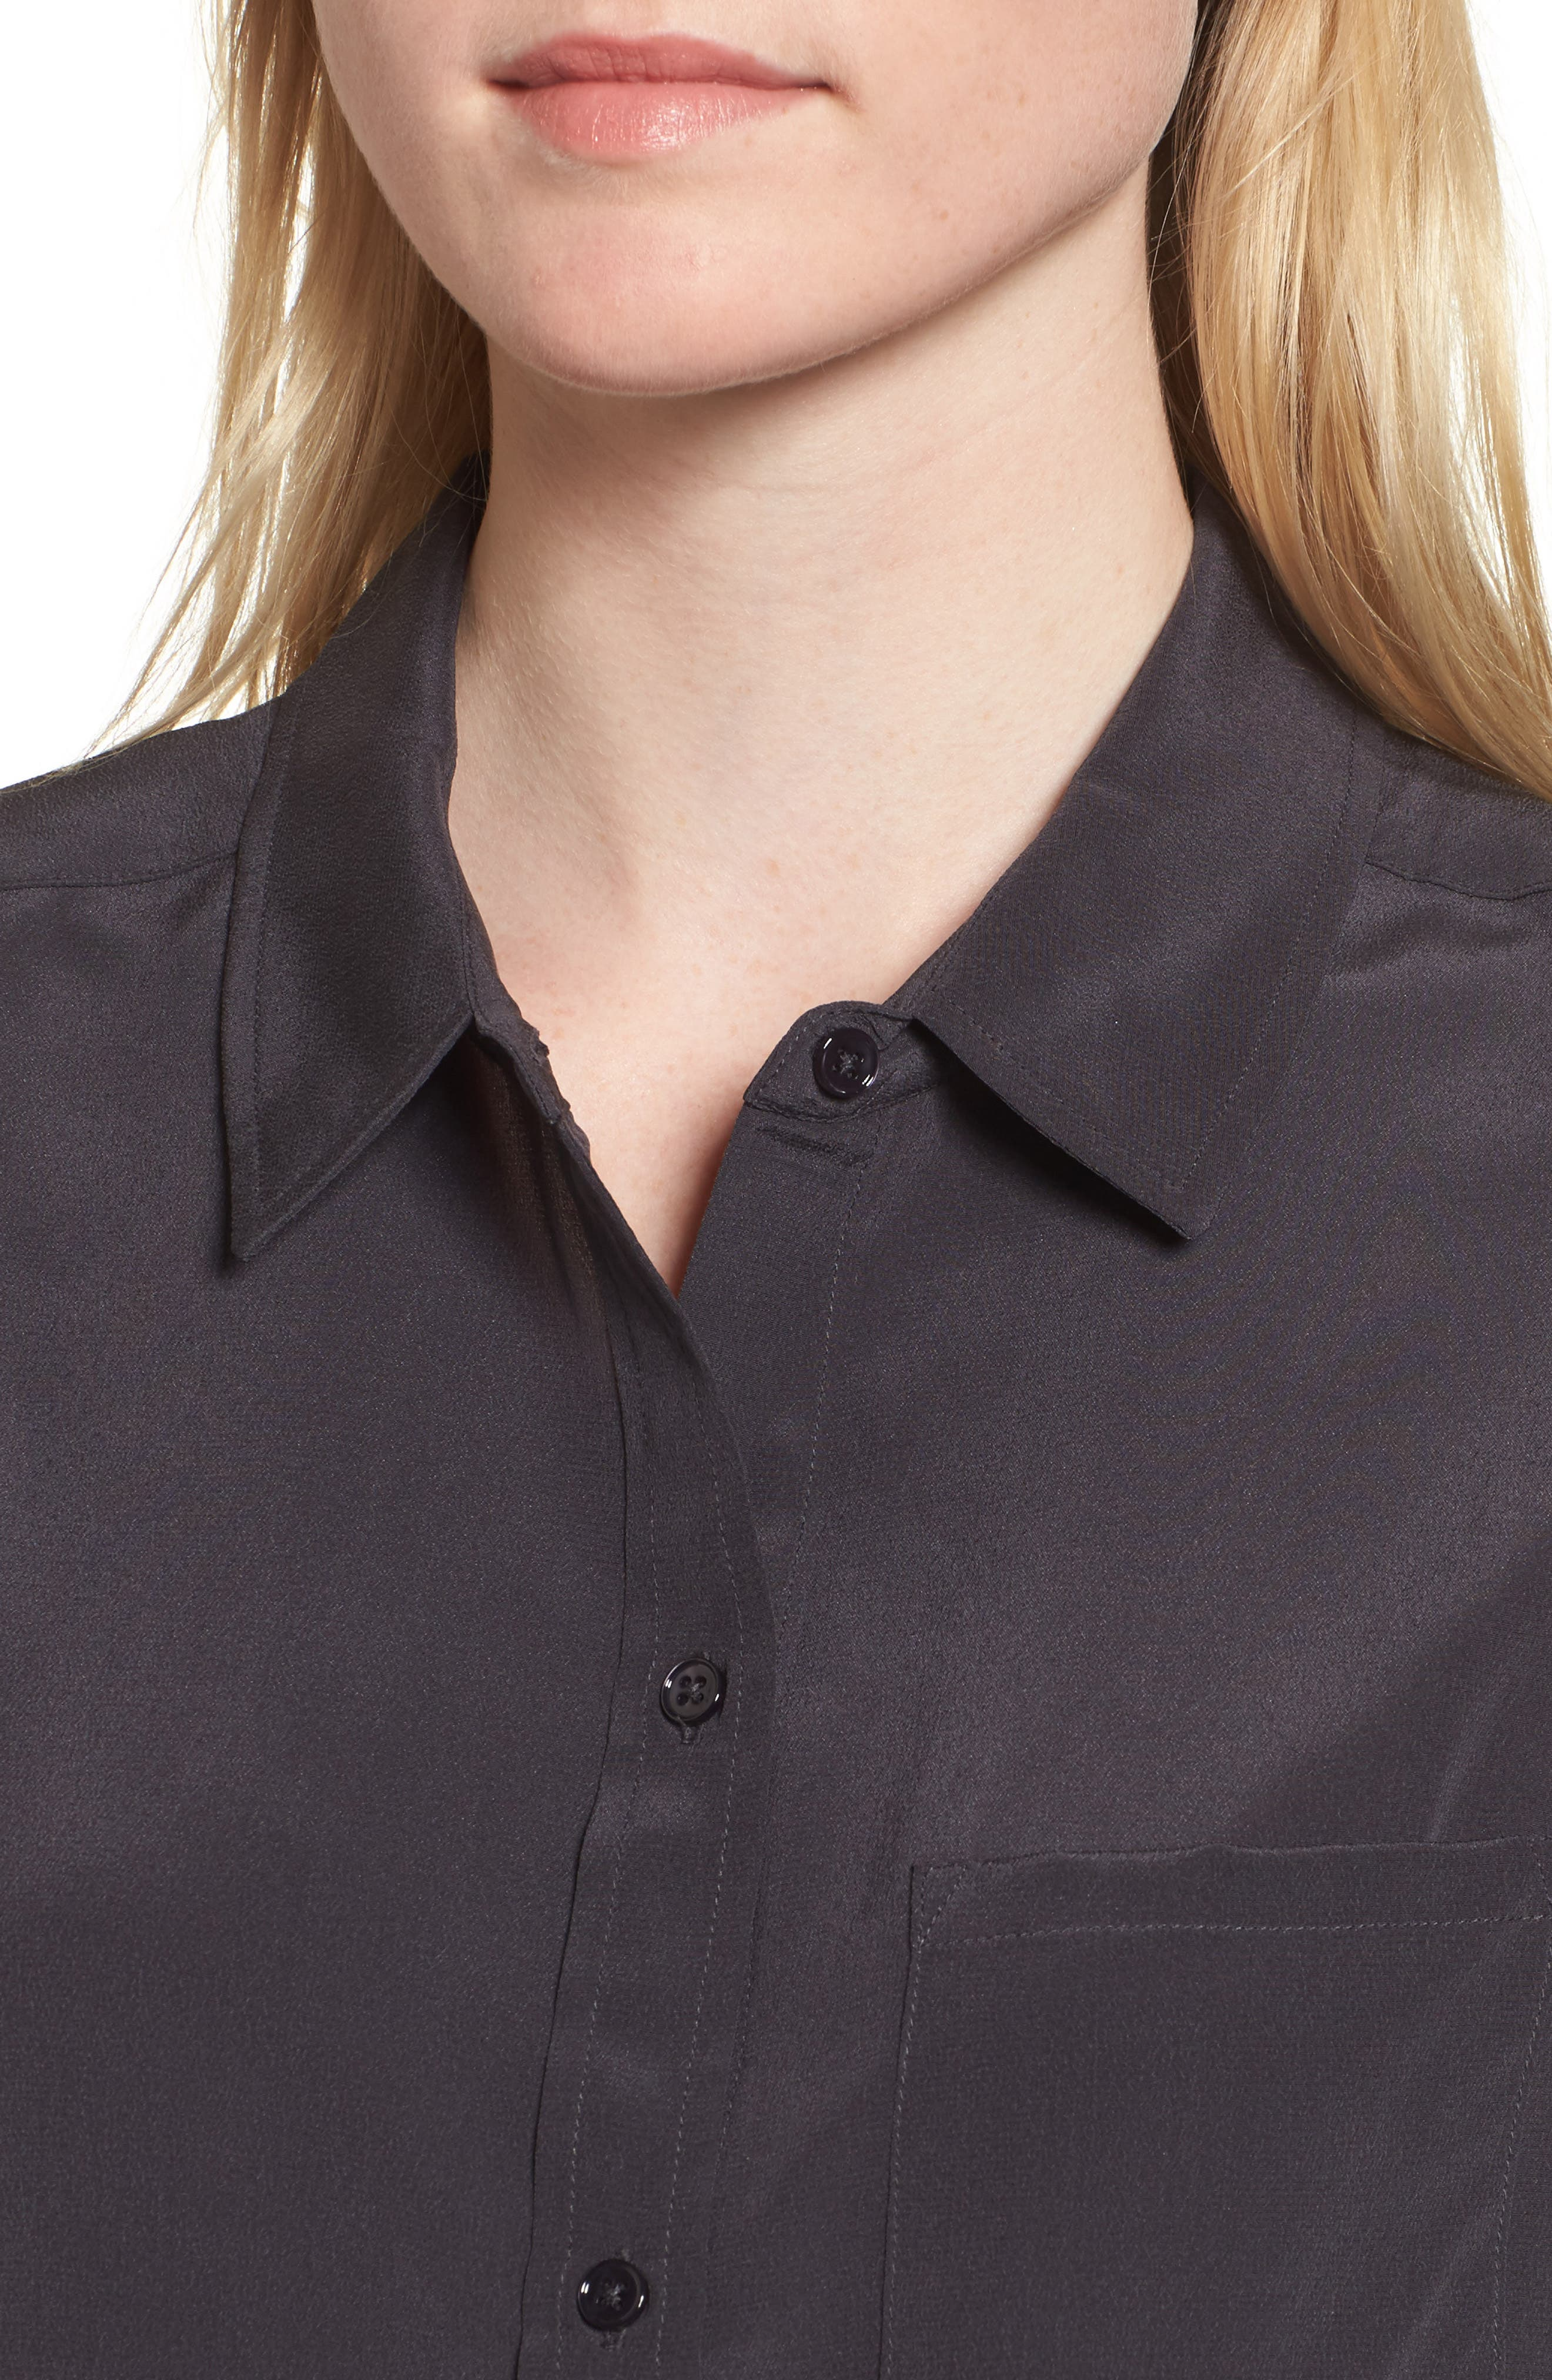 Kate Silk Shirt,                             Alternate thumbnail 4, color,                             CHARCOAL